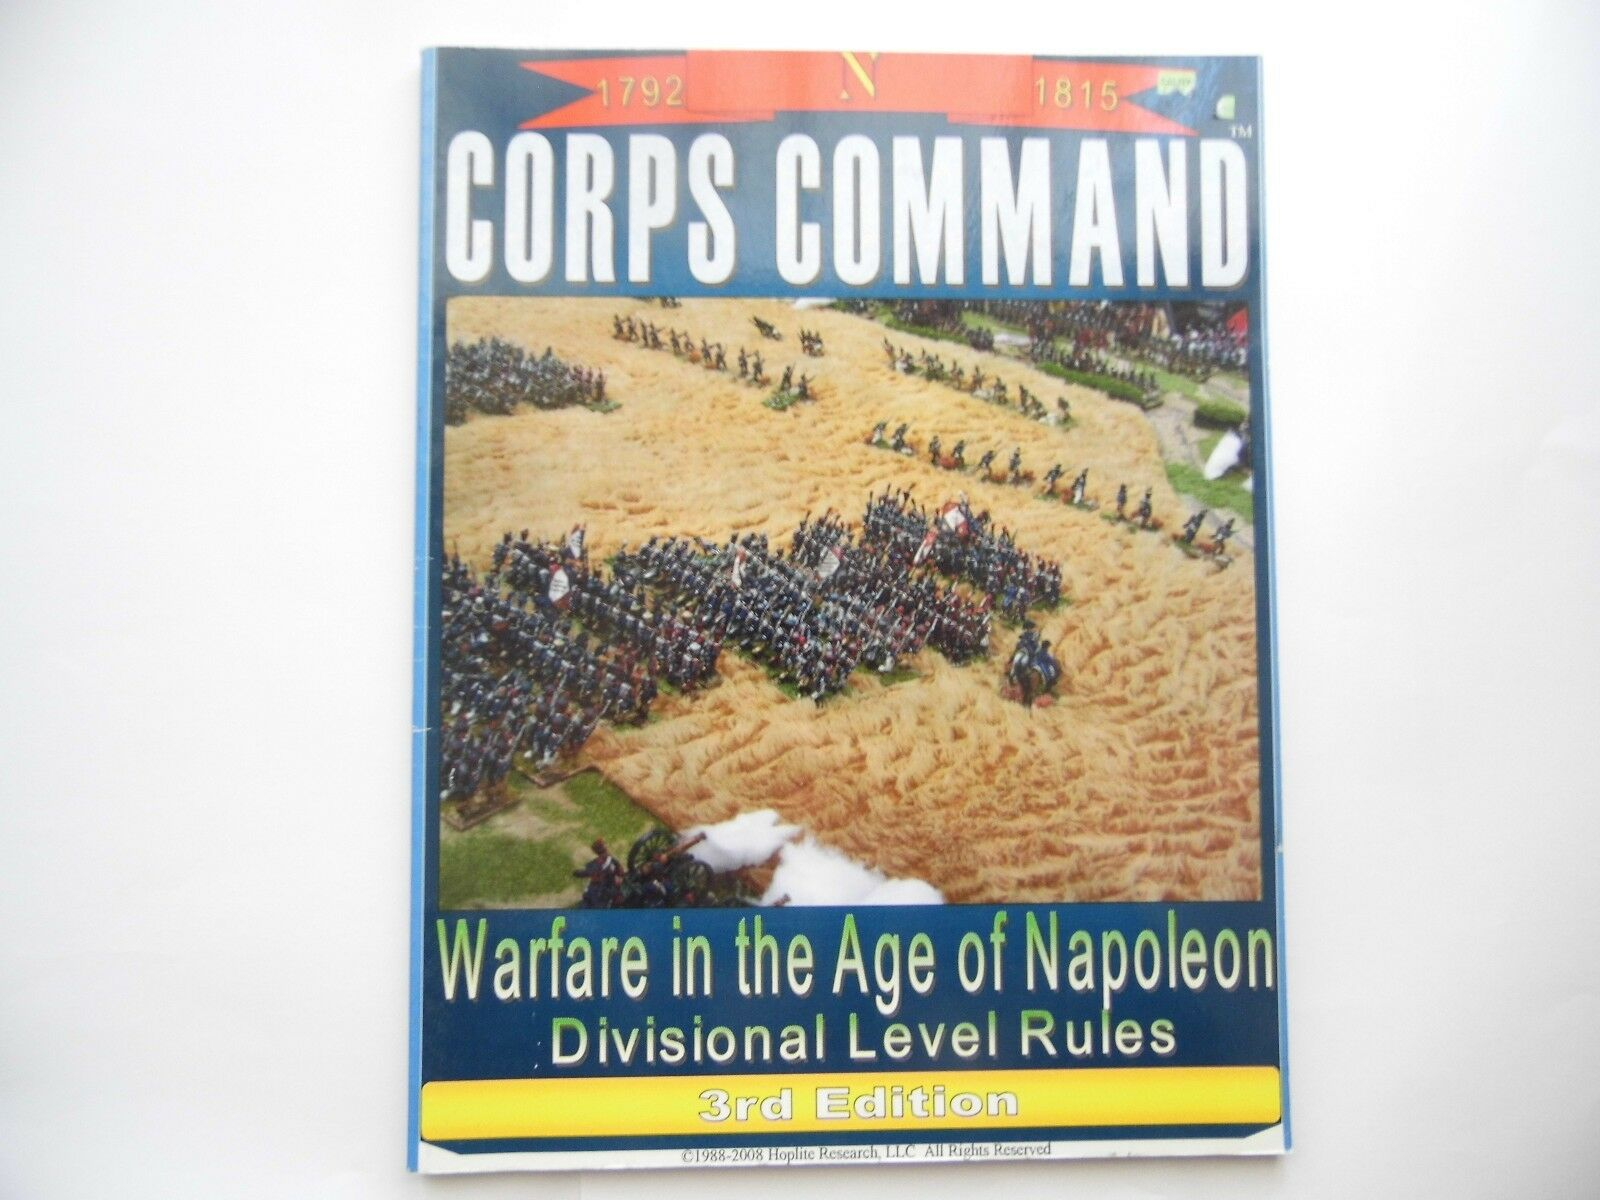 CORPS COMMAND - DIVISIONAL LEVEL RULES 3RD EDITION - WARGAMES RULES -USED